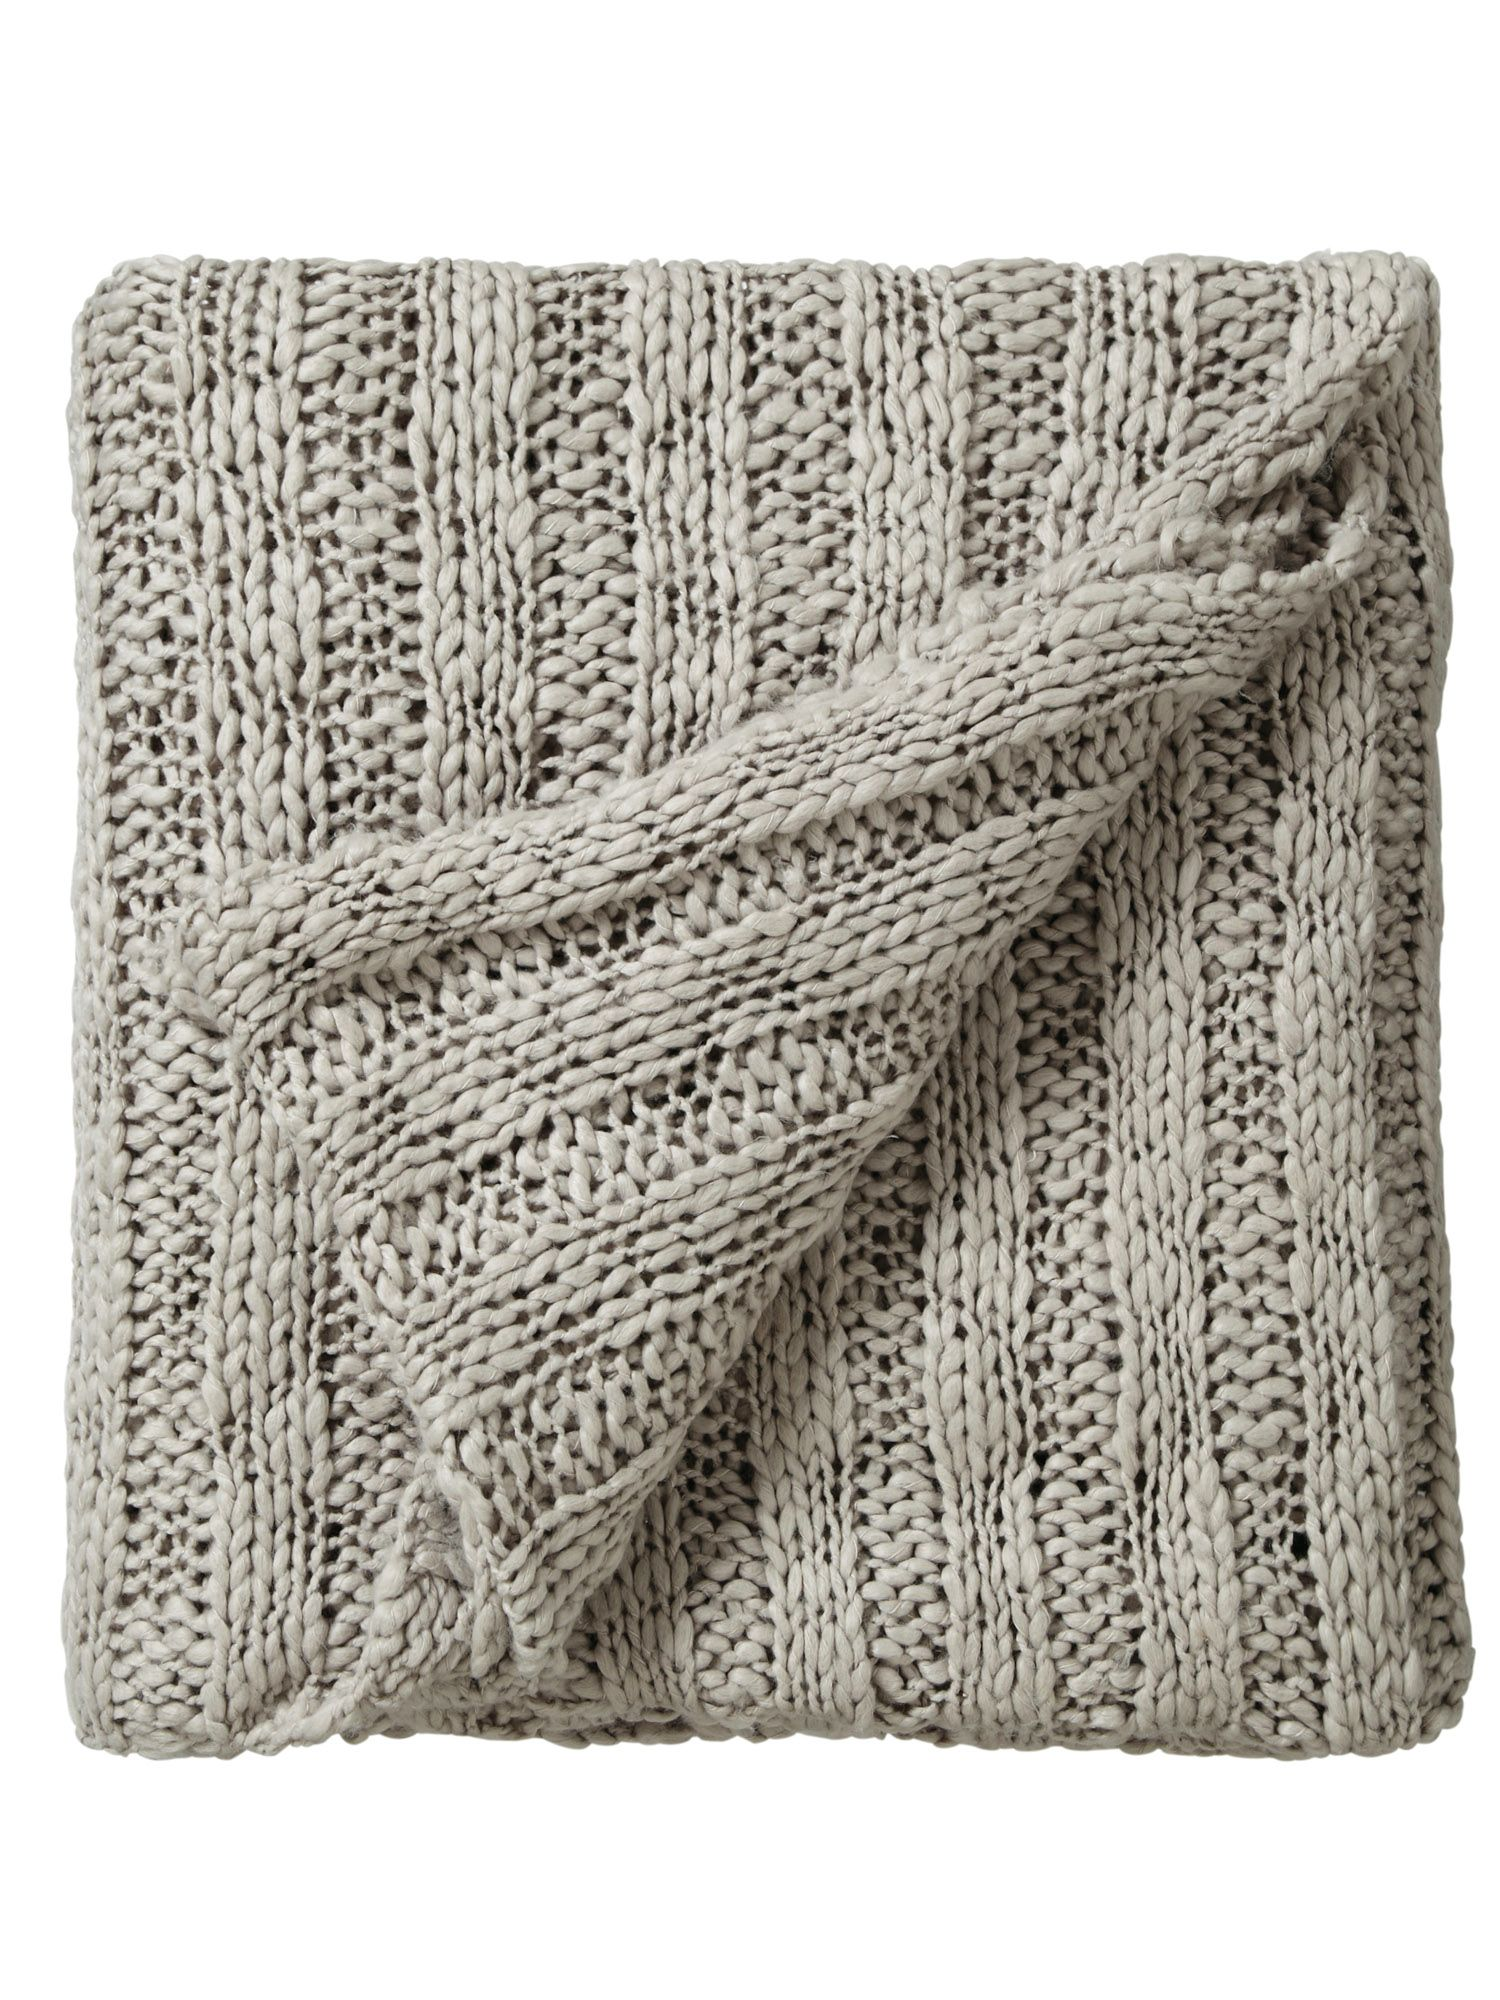 Drift knitted throw 130x150cm stone